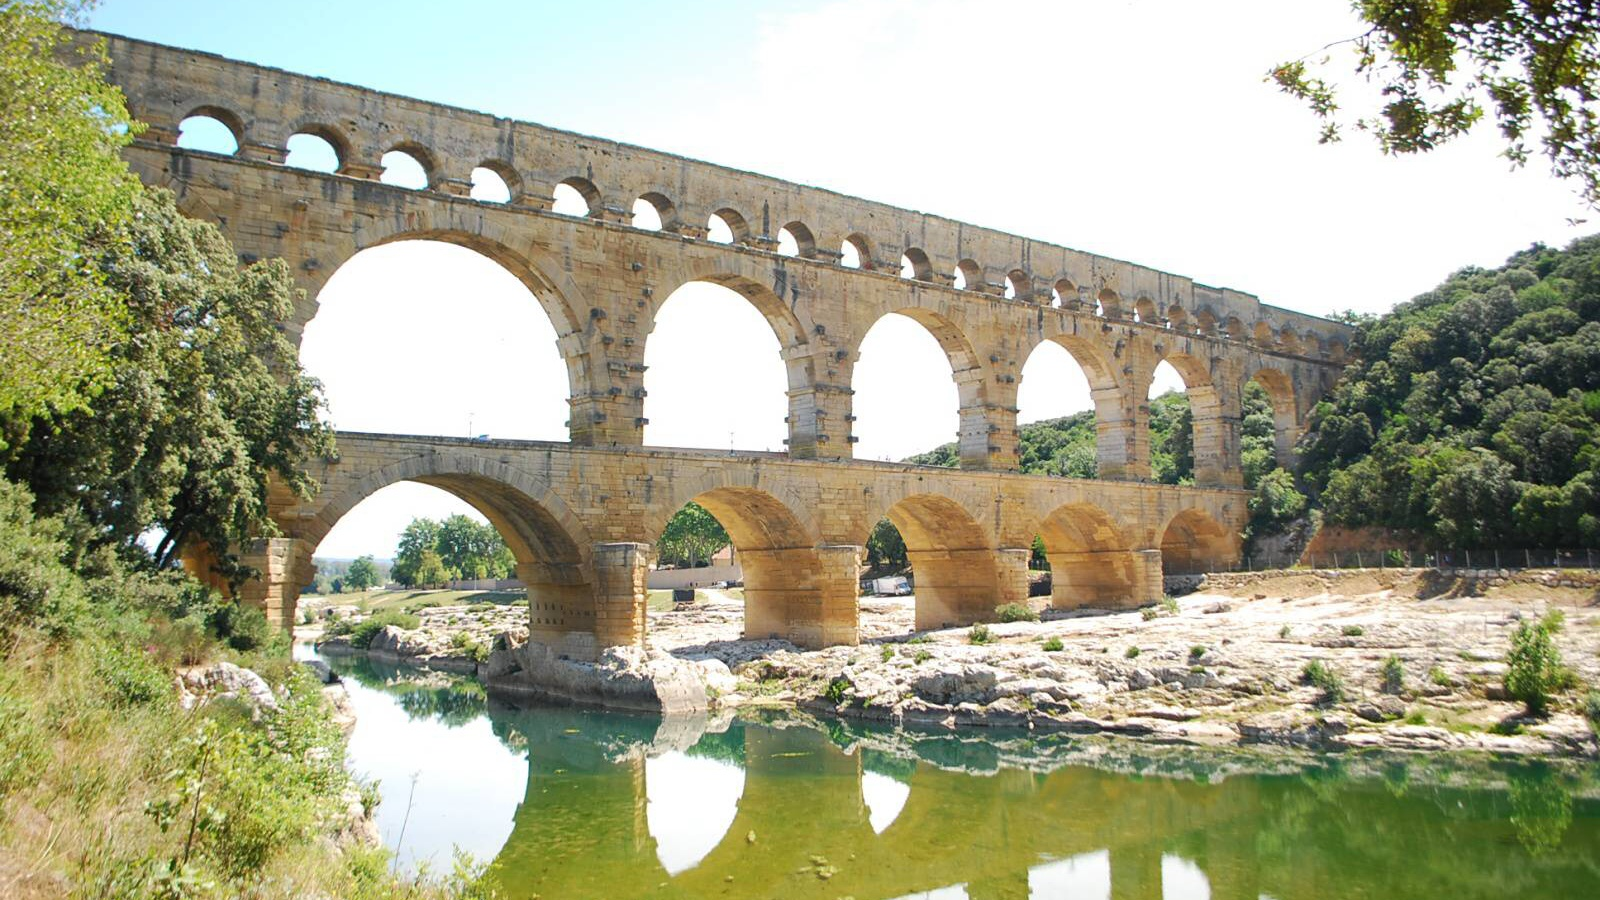 Most Pont du Gard